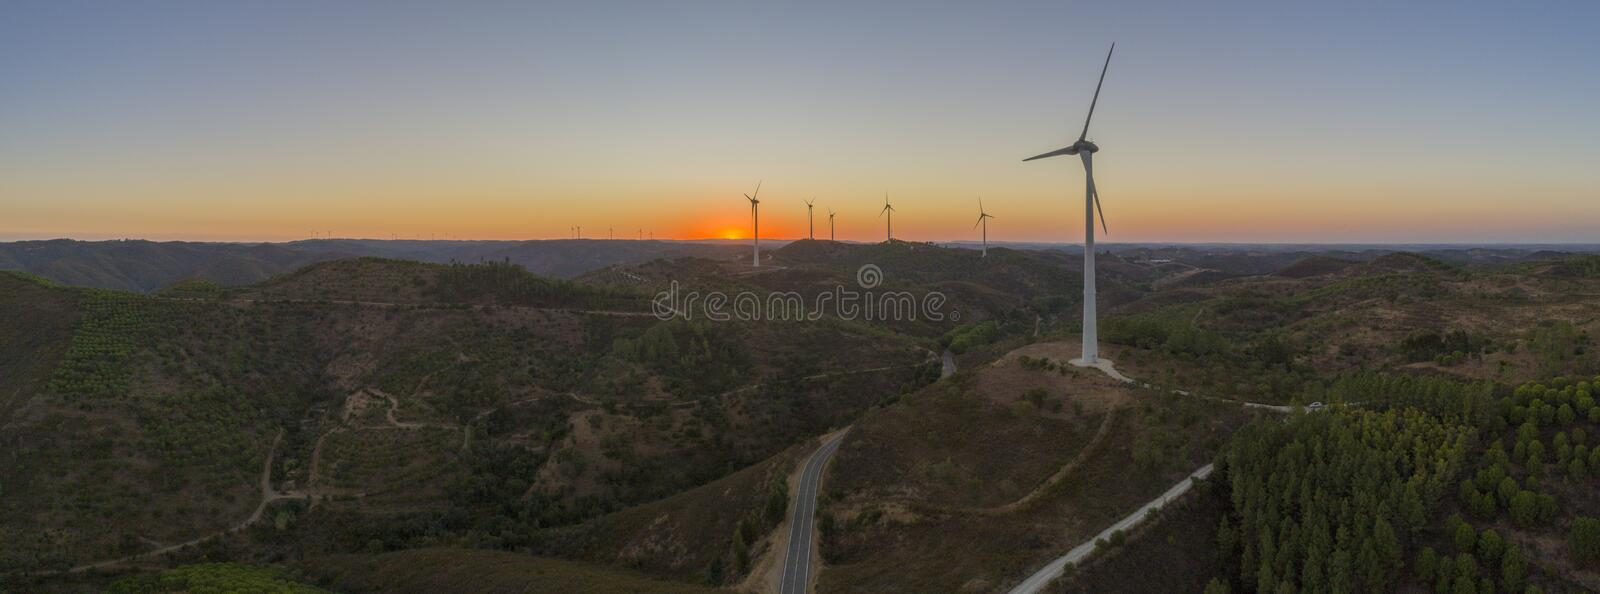 Aerial Wind farm turbines silhouette at sunset. Clean renewable energy power generating windmills. Algarve countryside. Portugal royalty free stock images